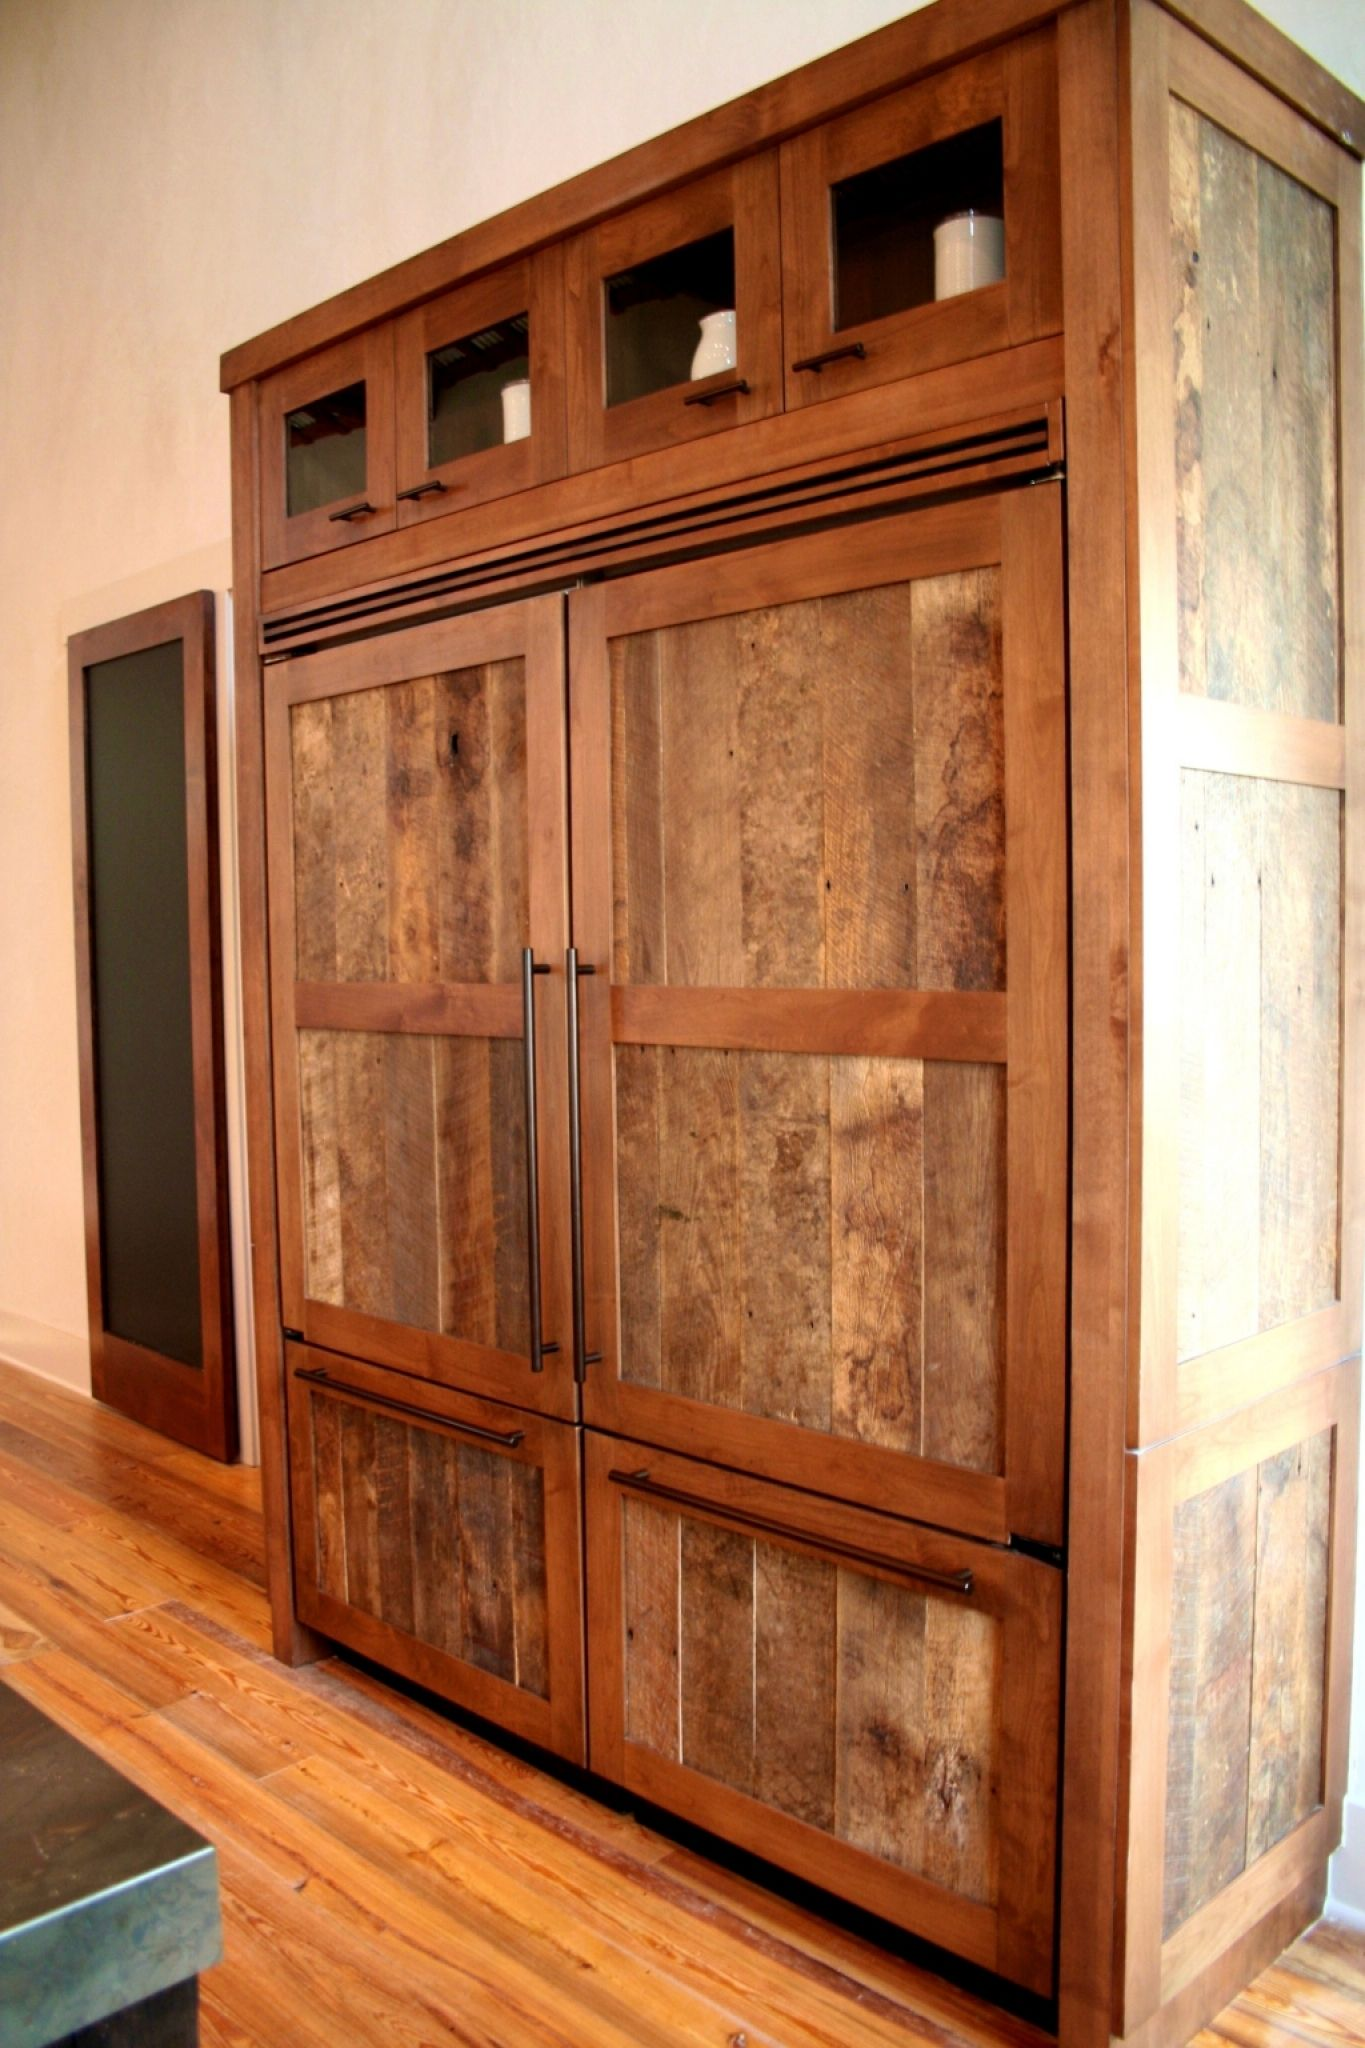 ebay used kitchen cabinets for sale - small kitchen pantry ideas ...